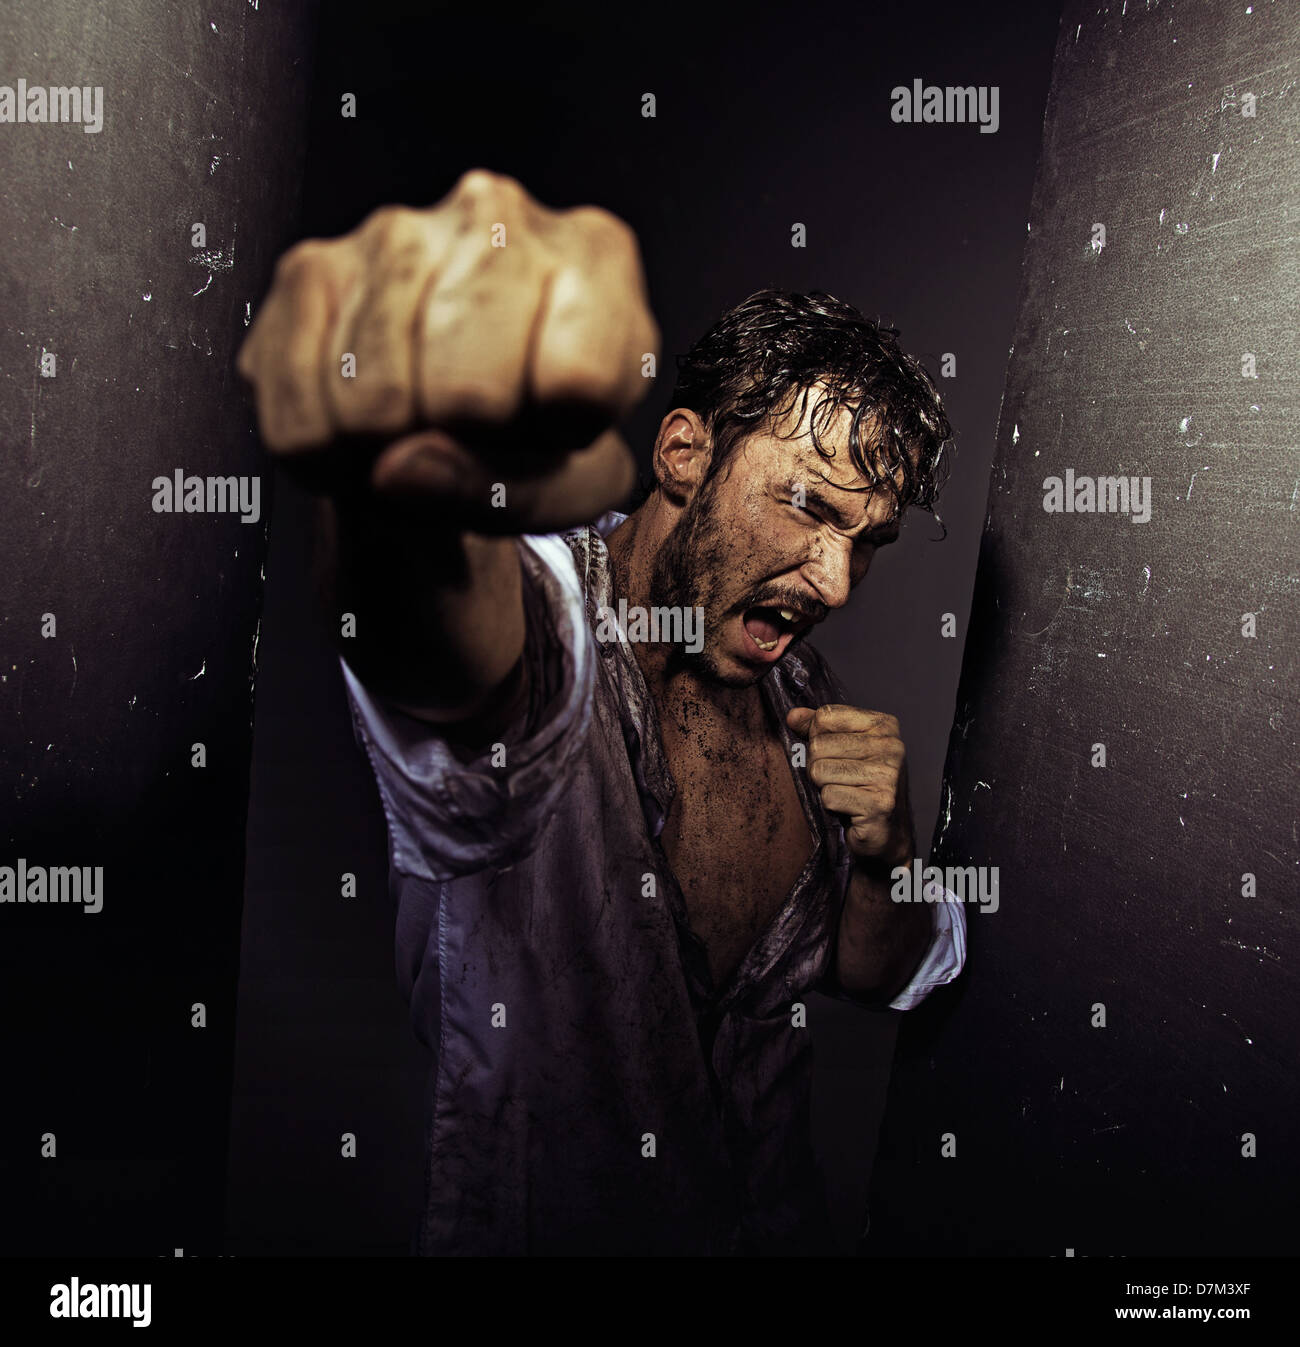 Fighting filthy guy with tough nature - Stock Image